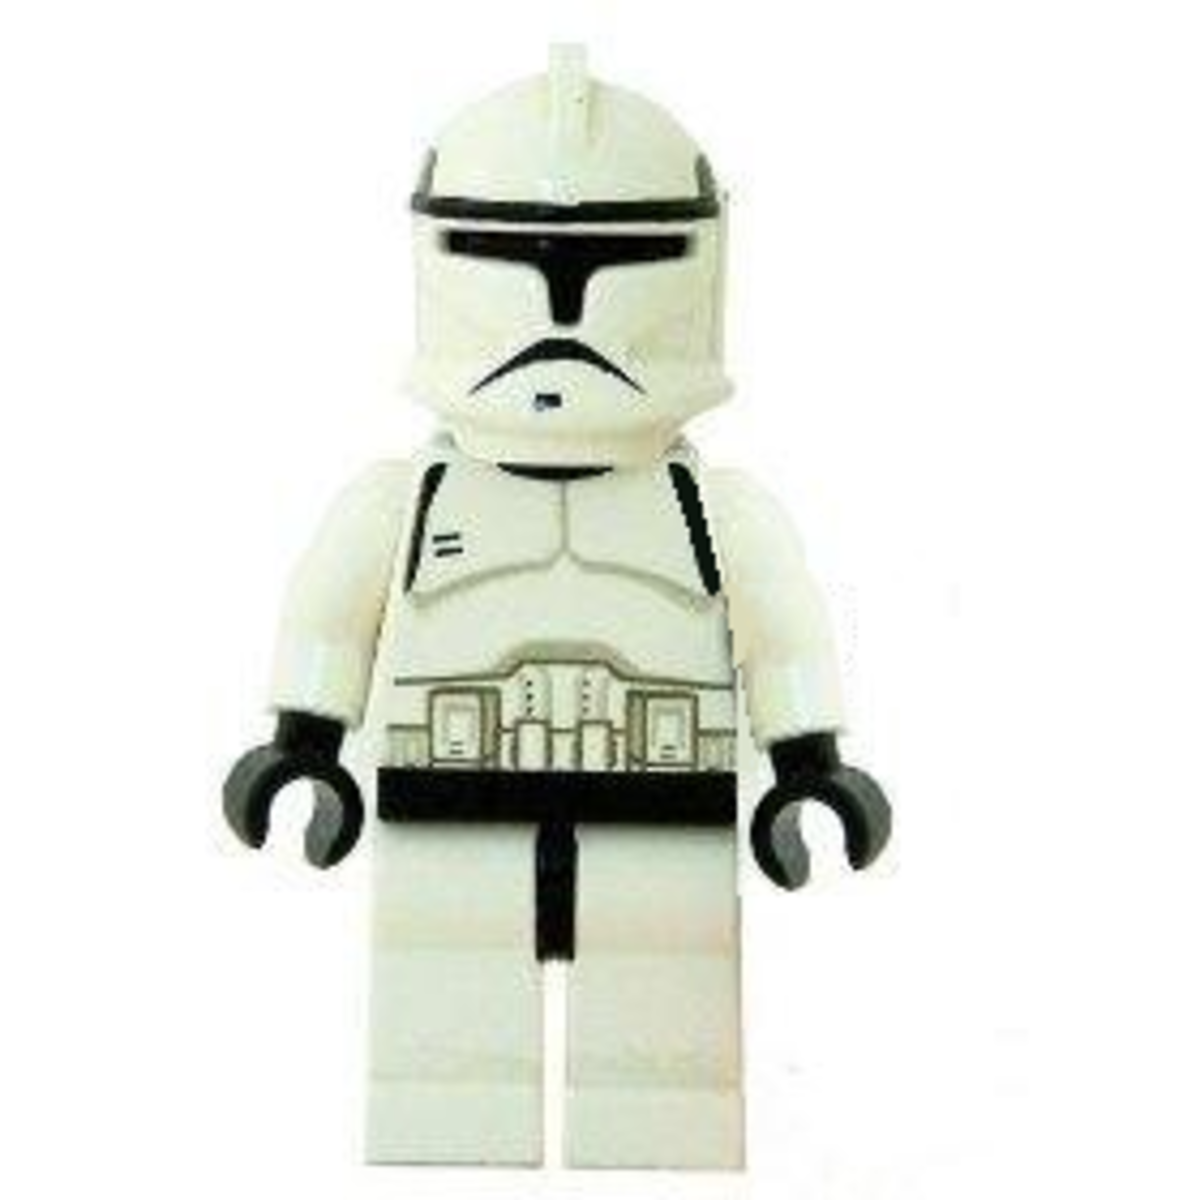 LEGO Star Wars AT-TE 4482 Clone Trooper Minifigure